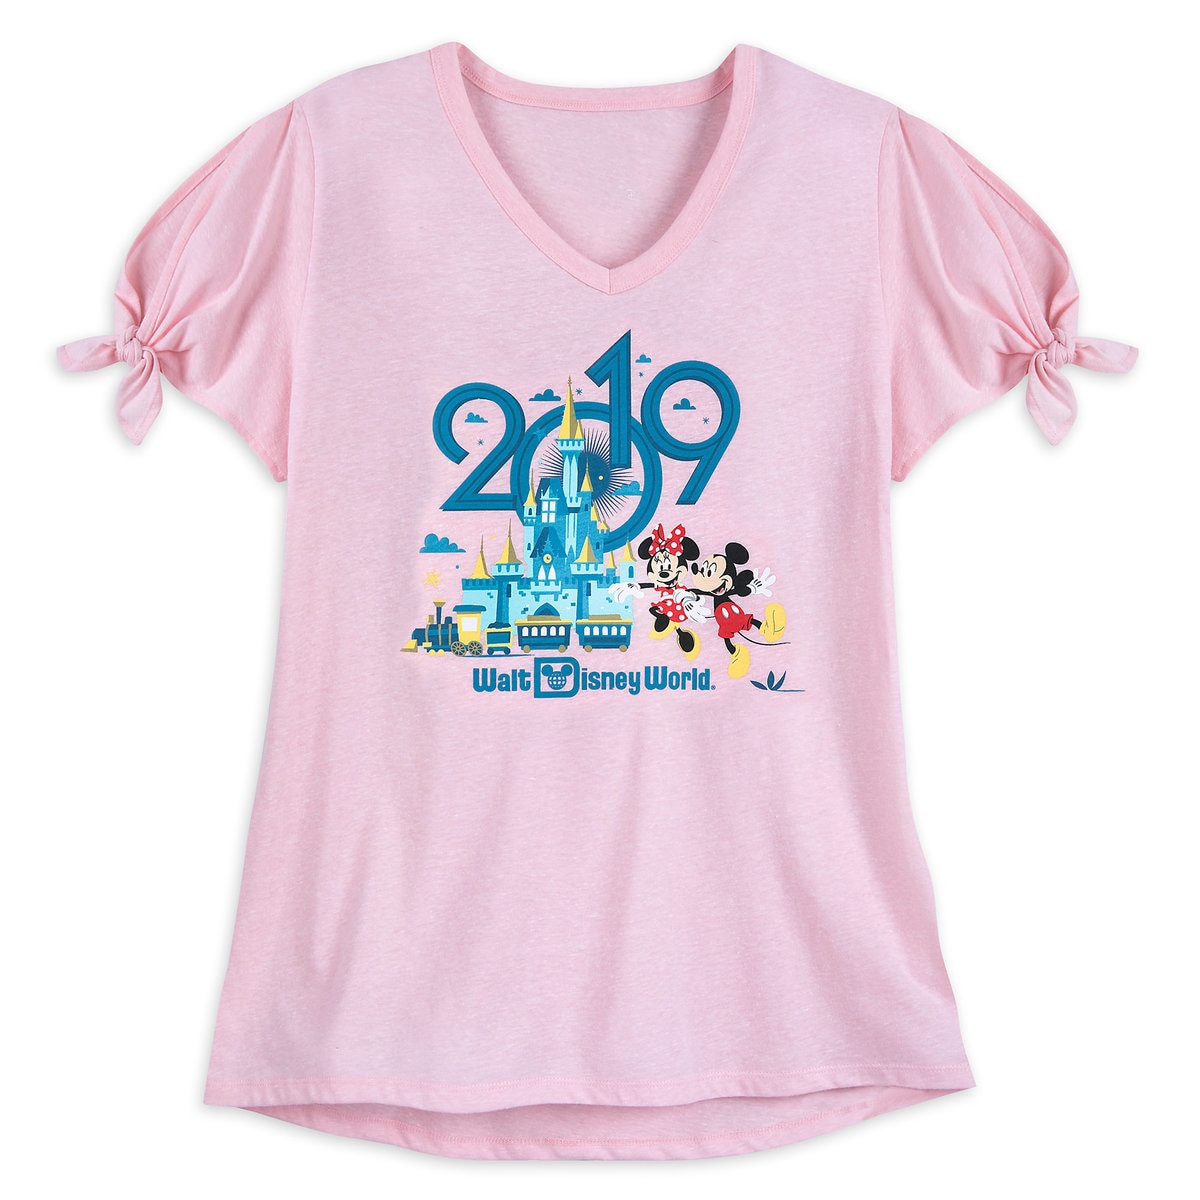 c11812be4 Product Image of Mickey and Minnie Mouse T-Shirt for Women - Walt Disney  World